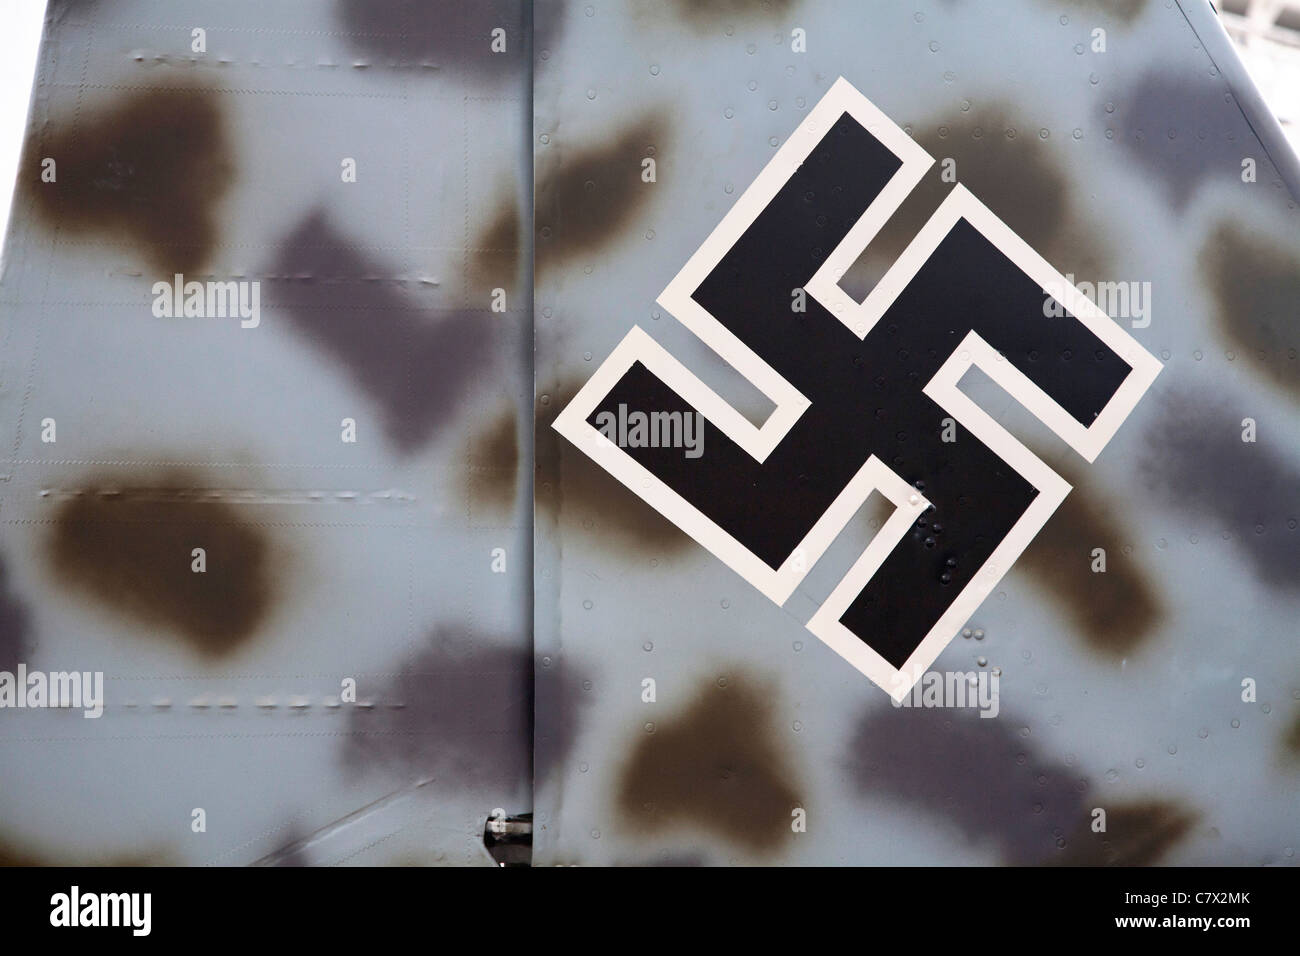 Nazi swastika and camouflage on the tail of a Focke-Wulf WW2 aircraft in the Imperial War Museum, London. - Stock Image